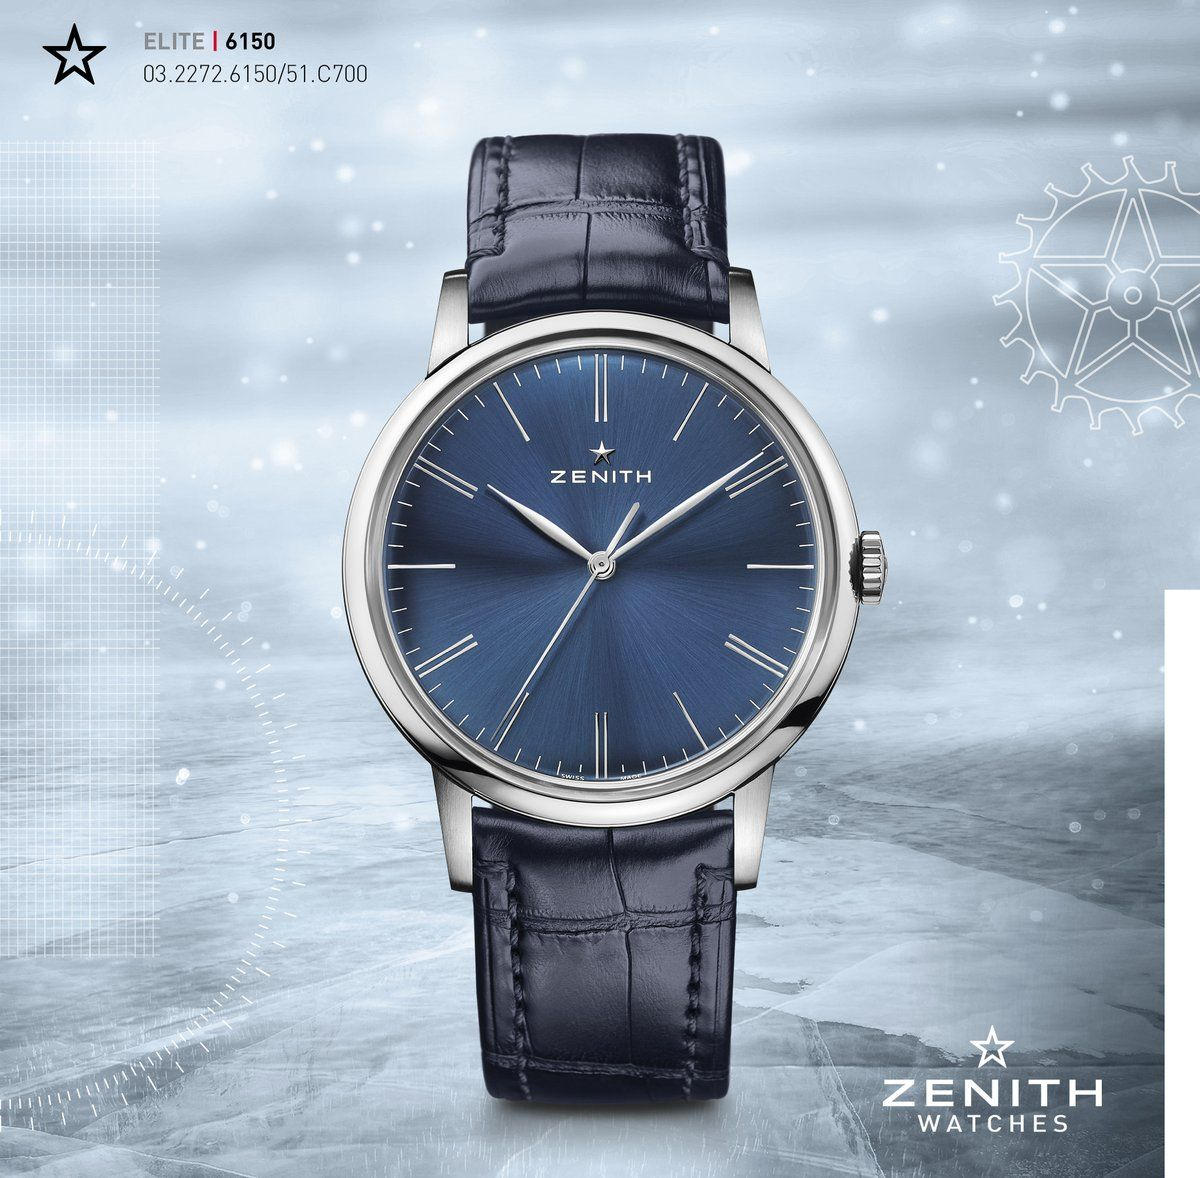 Zenith Watches ‏@ZenithWatches  Who said red is the colour of Christmas? This year Zenith is going blue all the way with the Elite 6150! #zenithshadesofblue